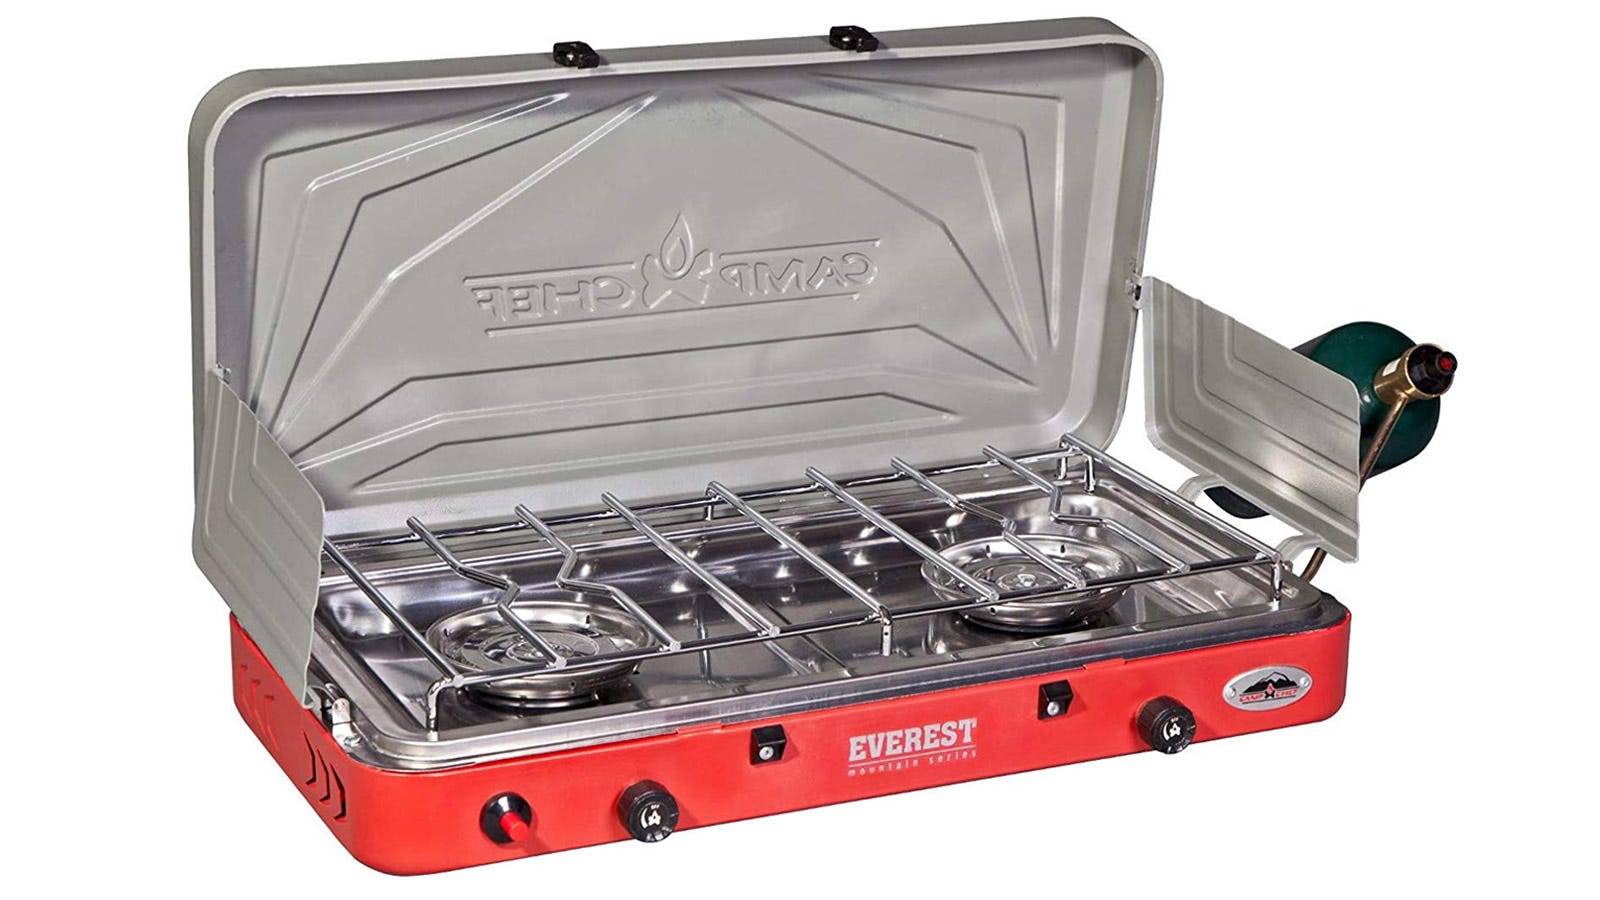 Camp Chef Everest suitcase camp stove